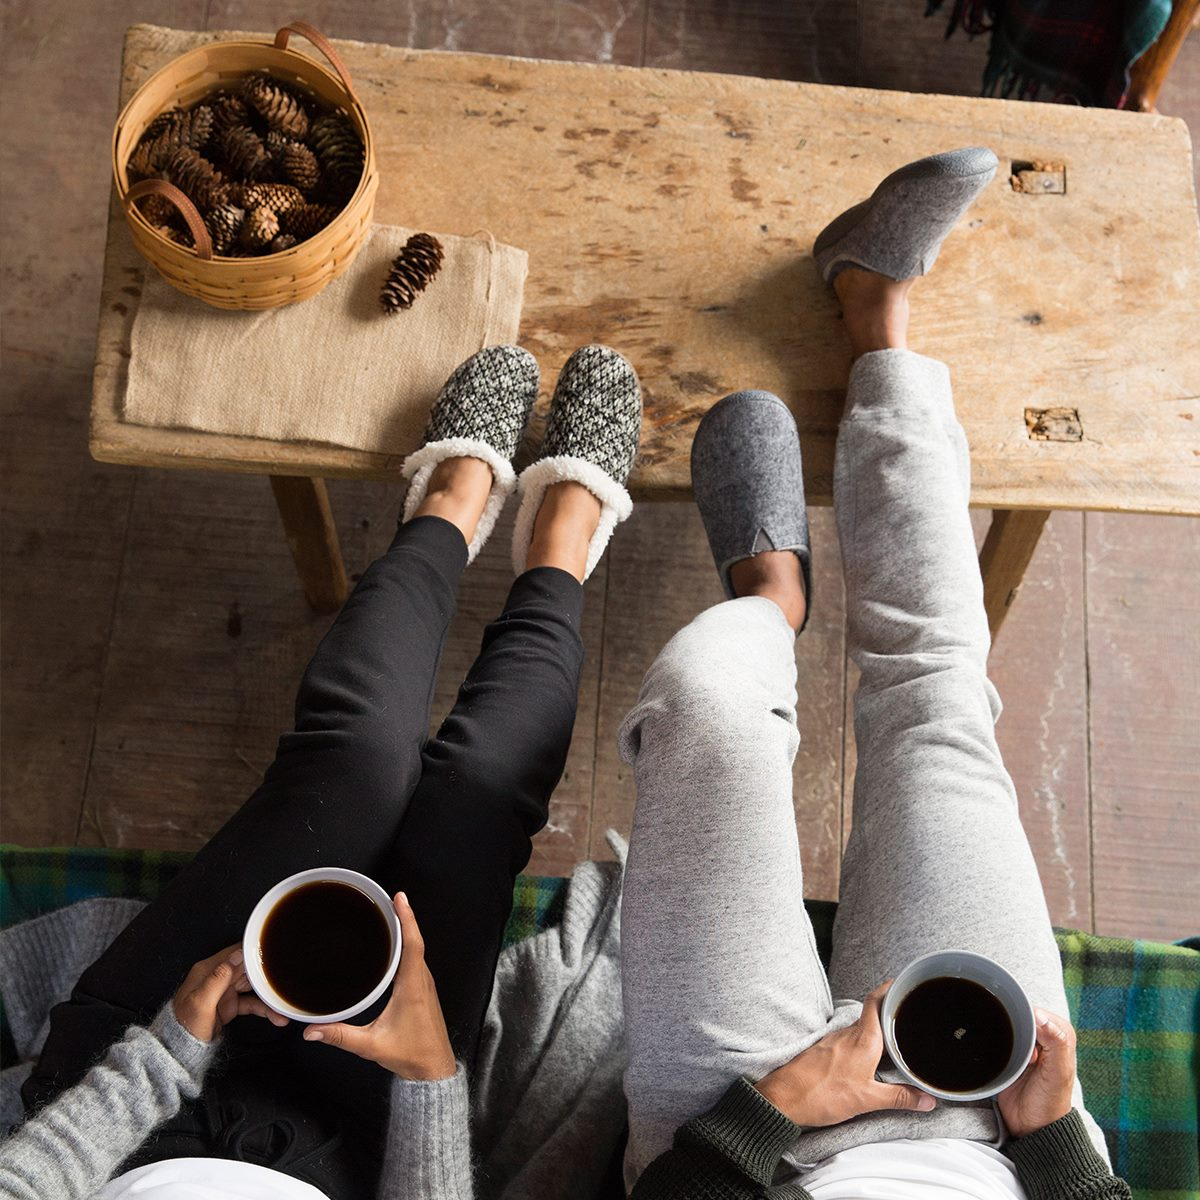 TOMS Canada Cyber Monday 2016 Deals: FREE Shipping on All Orders, Up to 40% Off Select Styles, 25% Off Seasonal Favourites + Extra 15% Off with Promo Code! Today